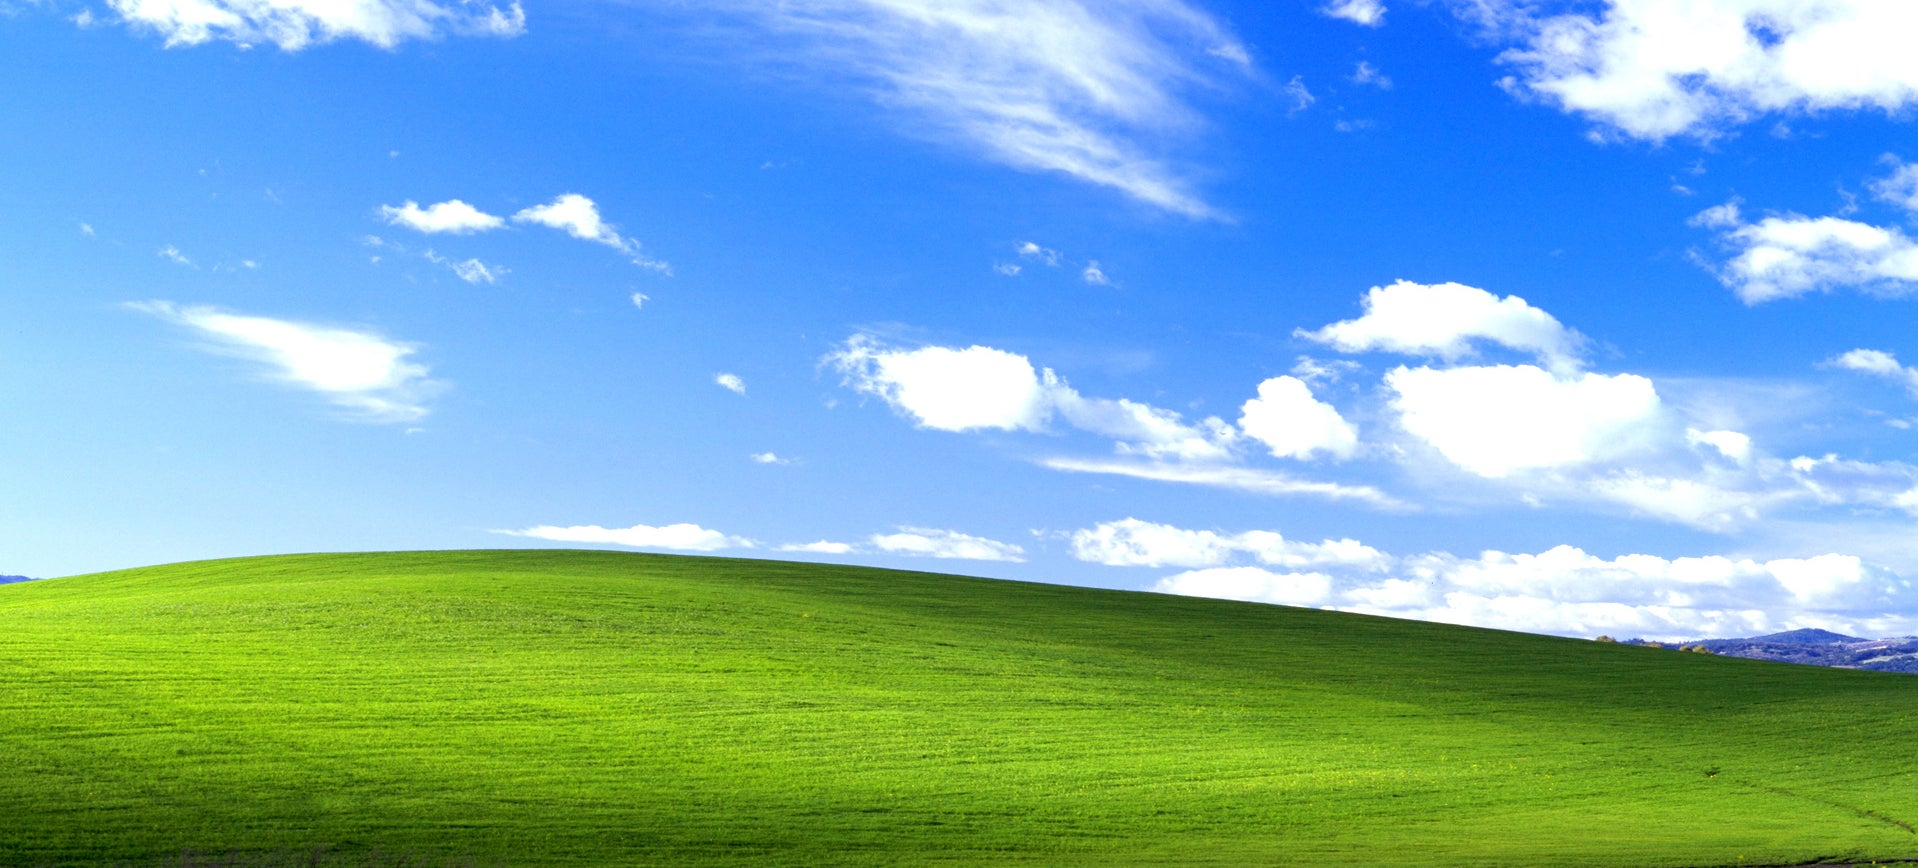 Photographer reveals the secret of the Windows XP desktop image